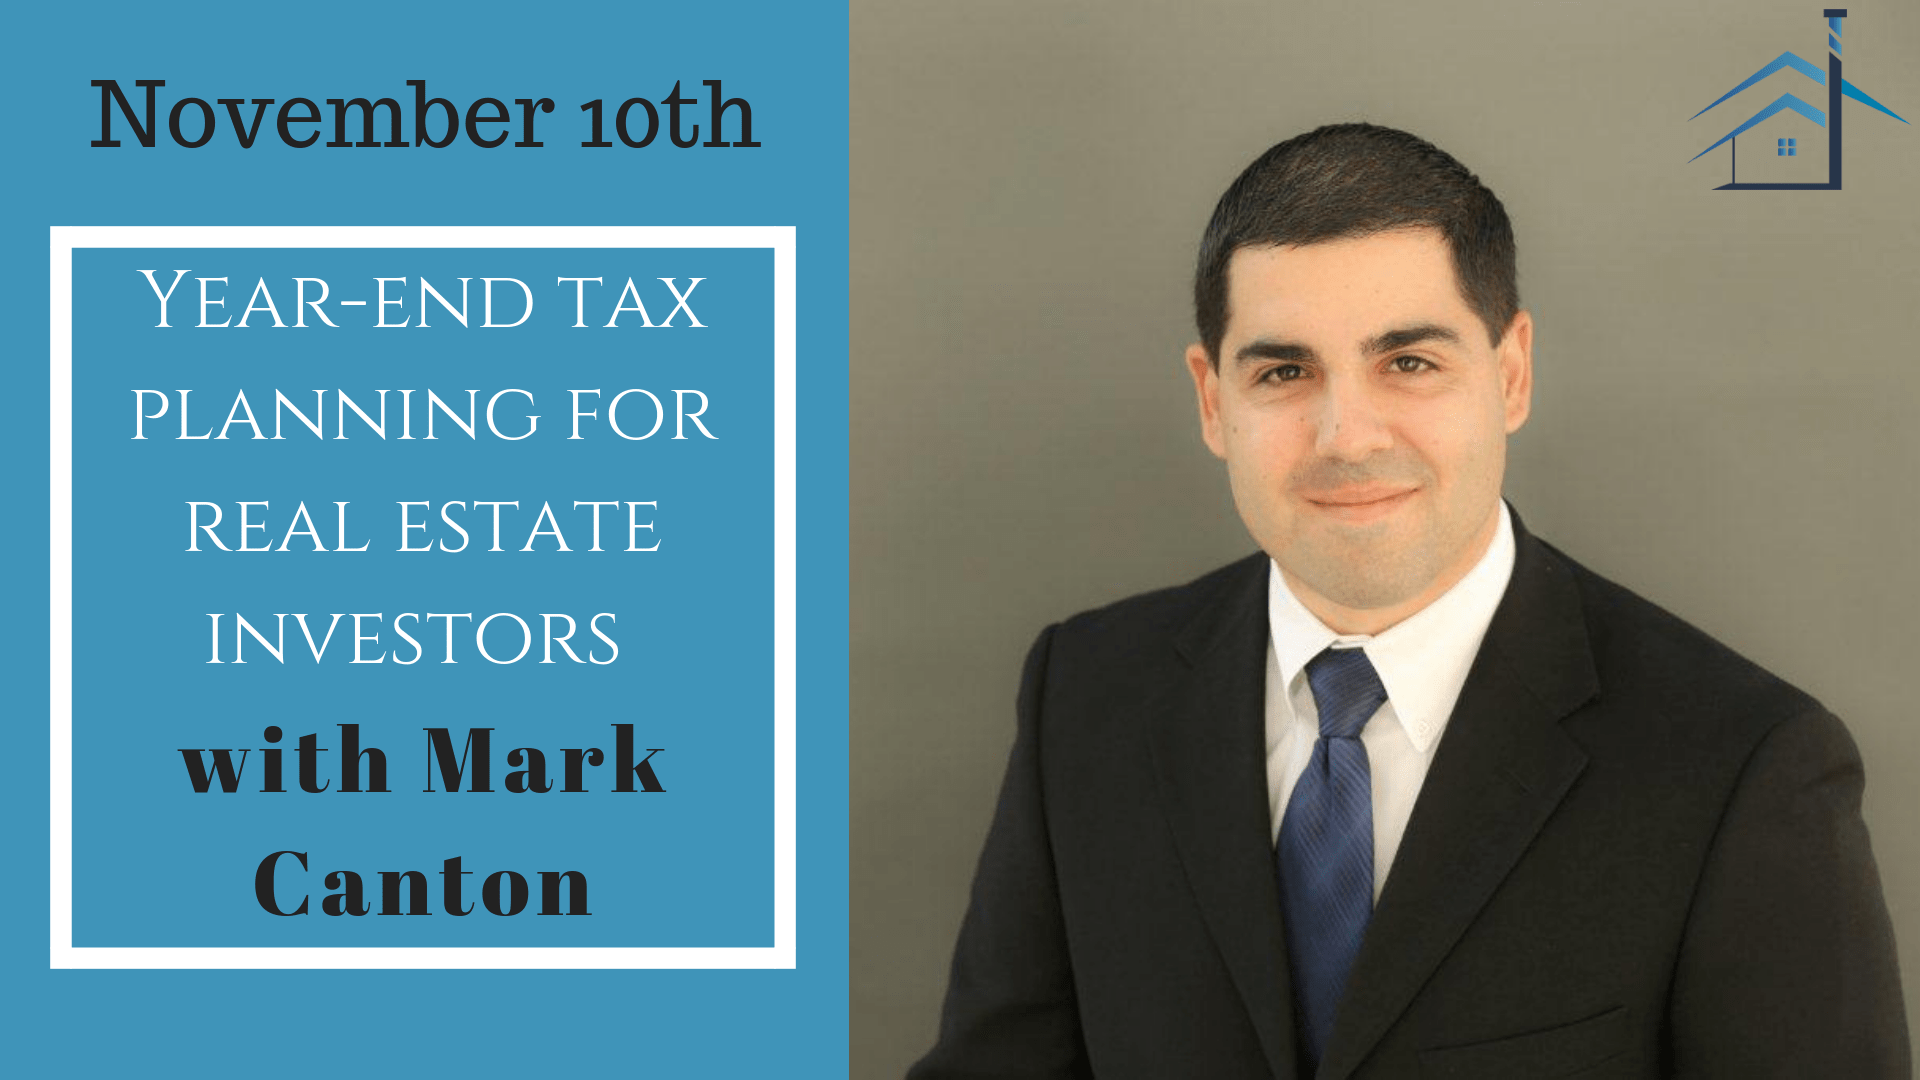 Year-end tax planning for real estate investors with Mark Canton at the Seattle Investors Club